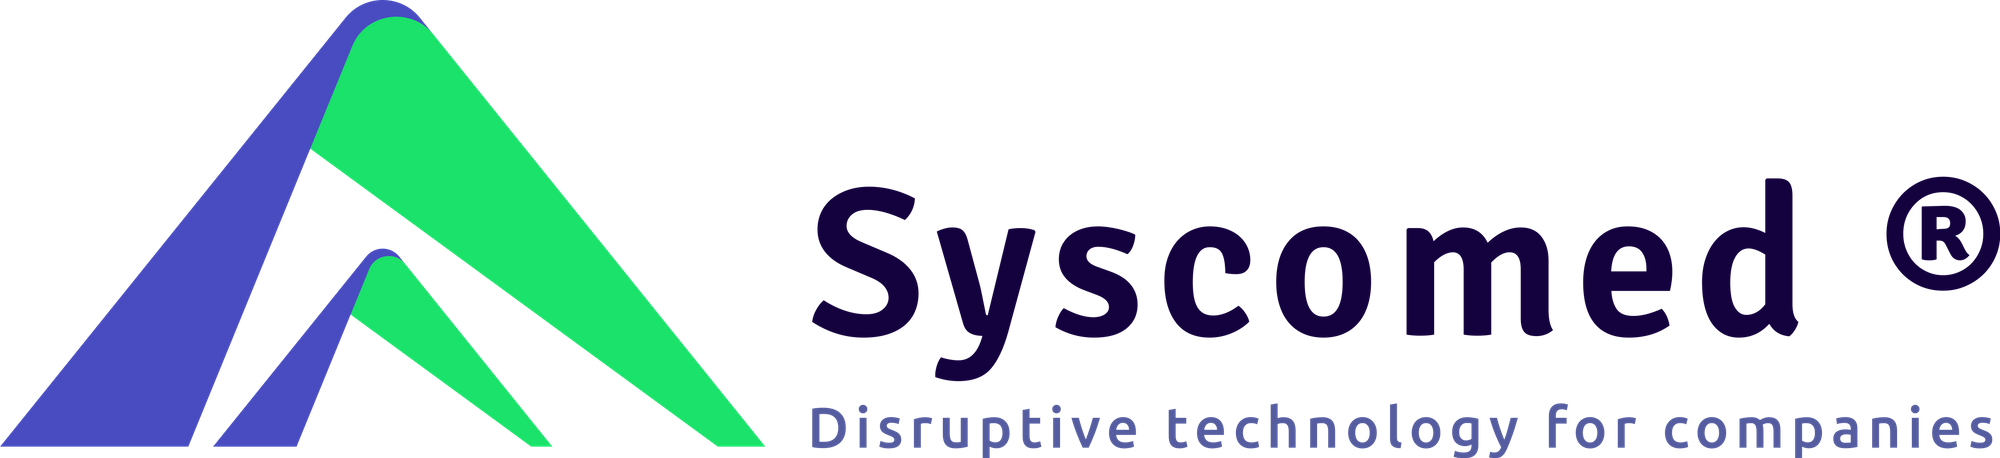 Syscomed | Transformación digital